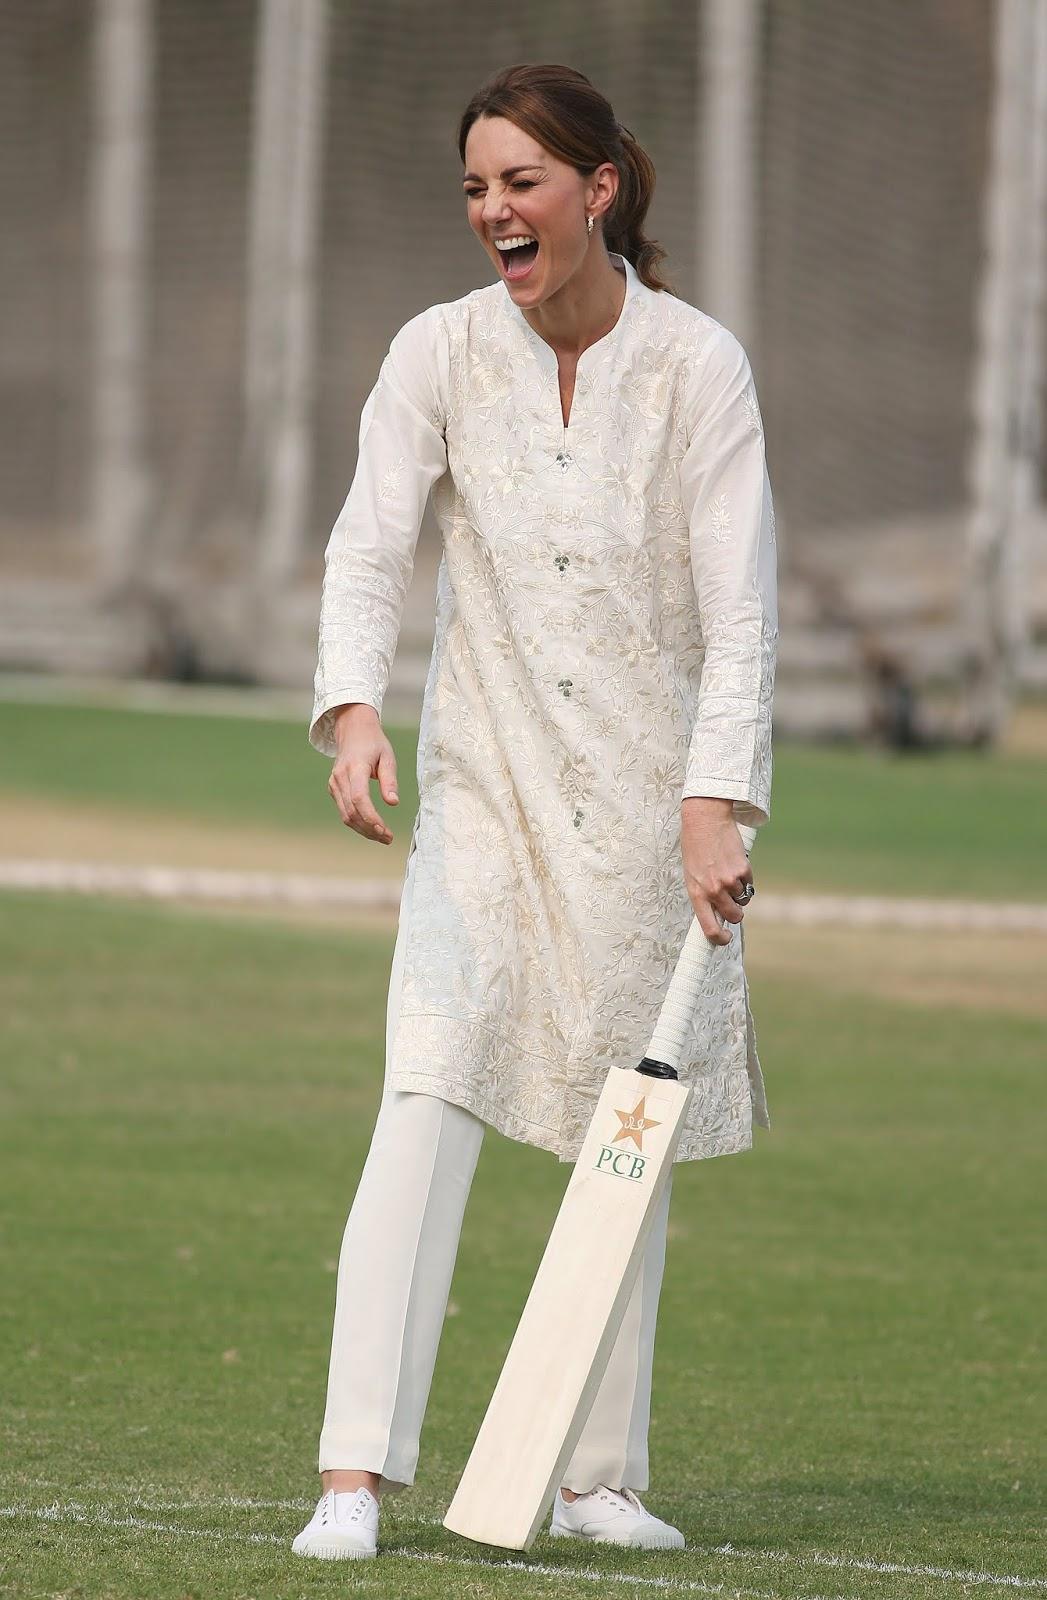 Kate Middleton And Prince William playing cricket in Lahore